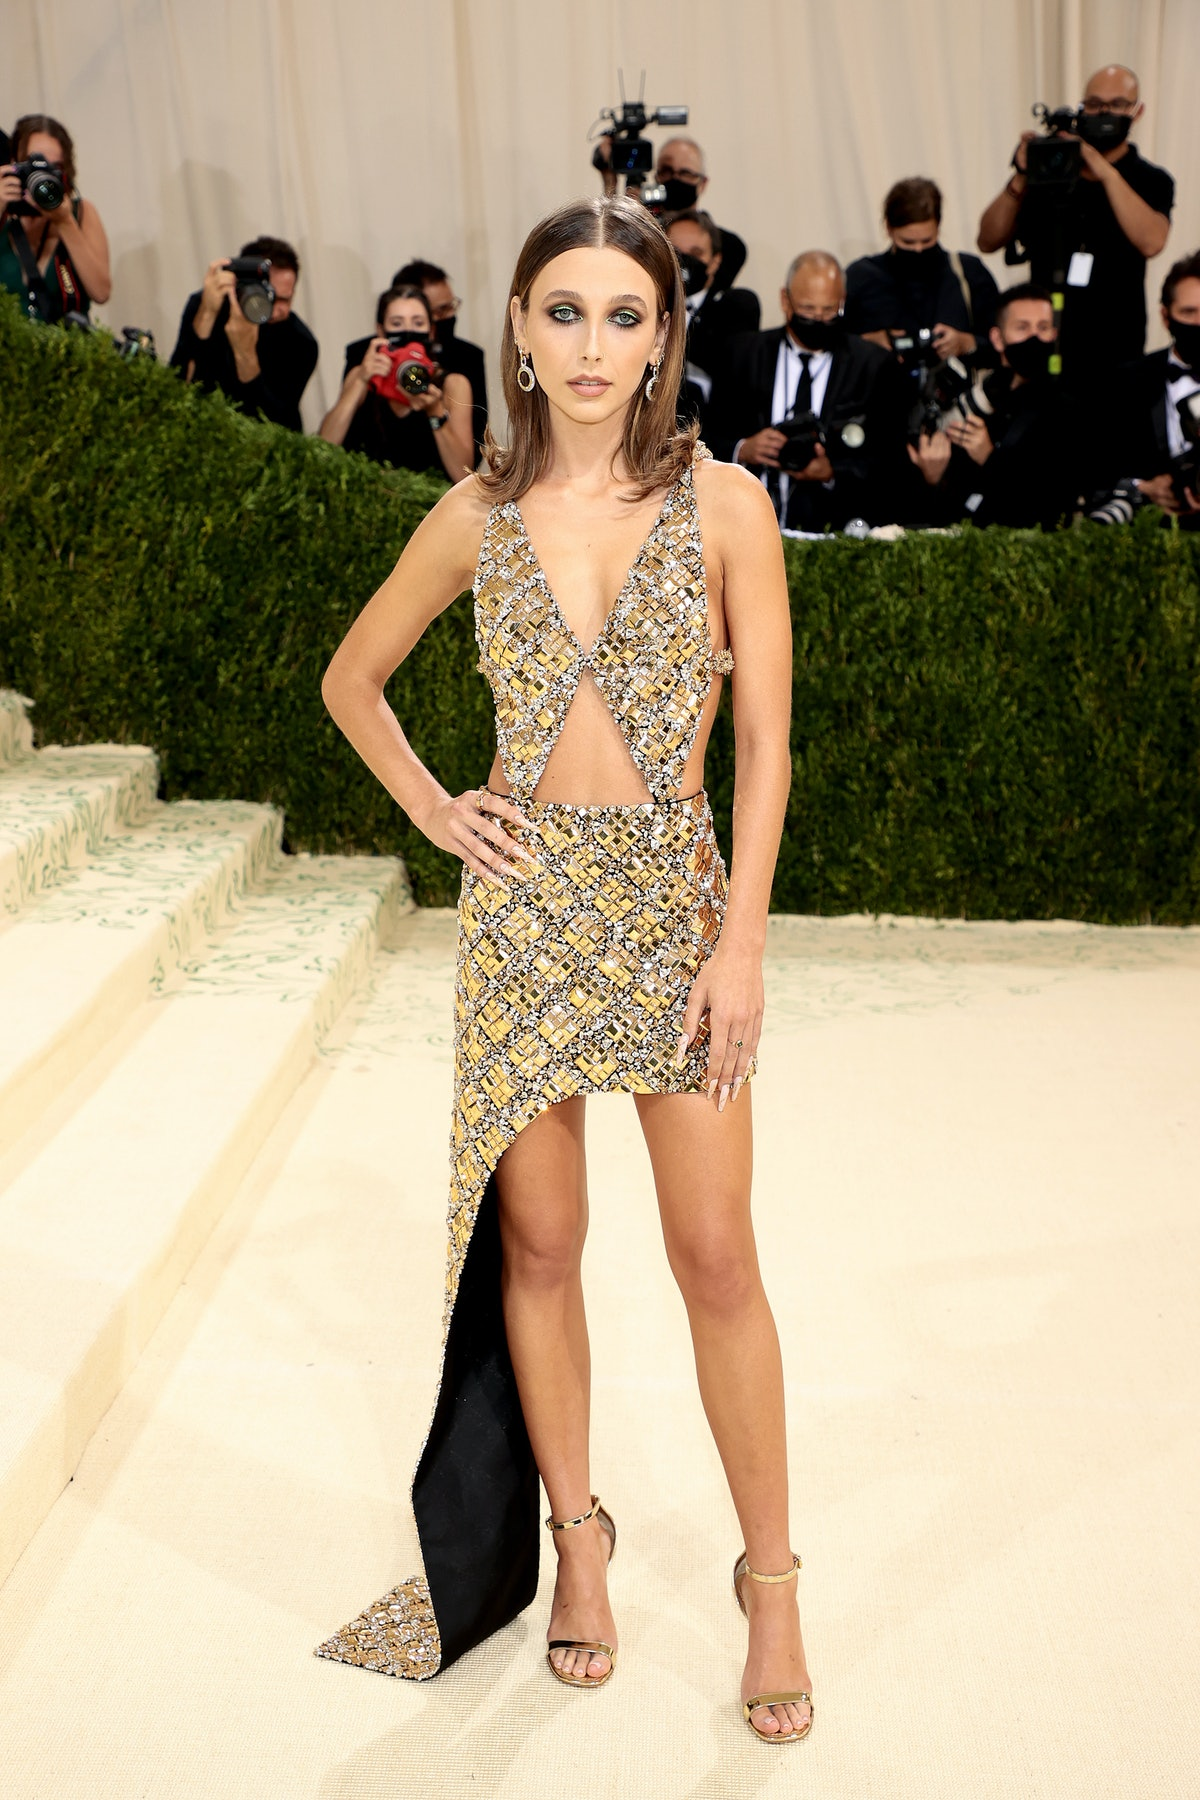 Emma Chamberlain attends The 2021 Met Gala Celebrating In America: A Lexicon Of Fashion at Metropoli...